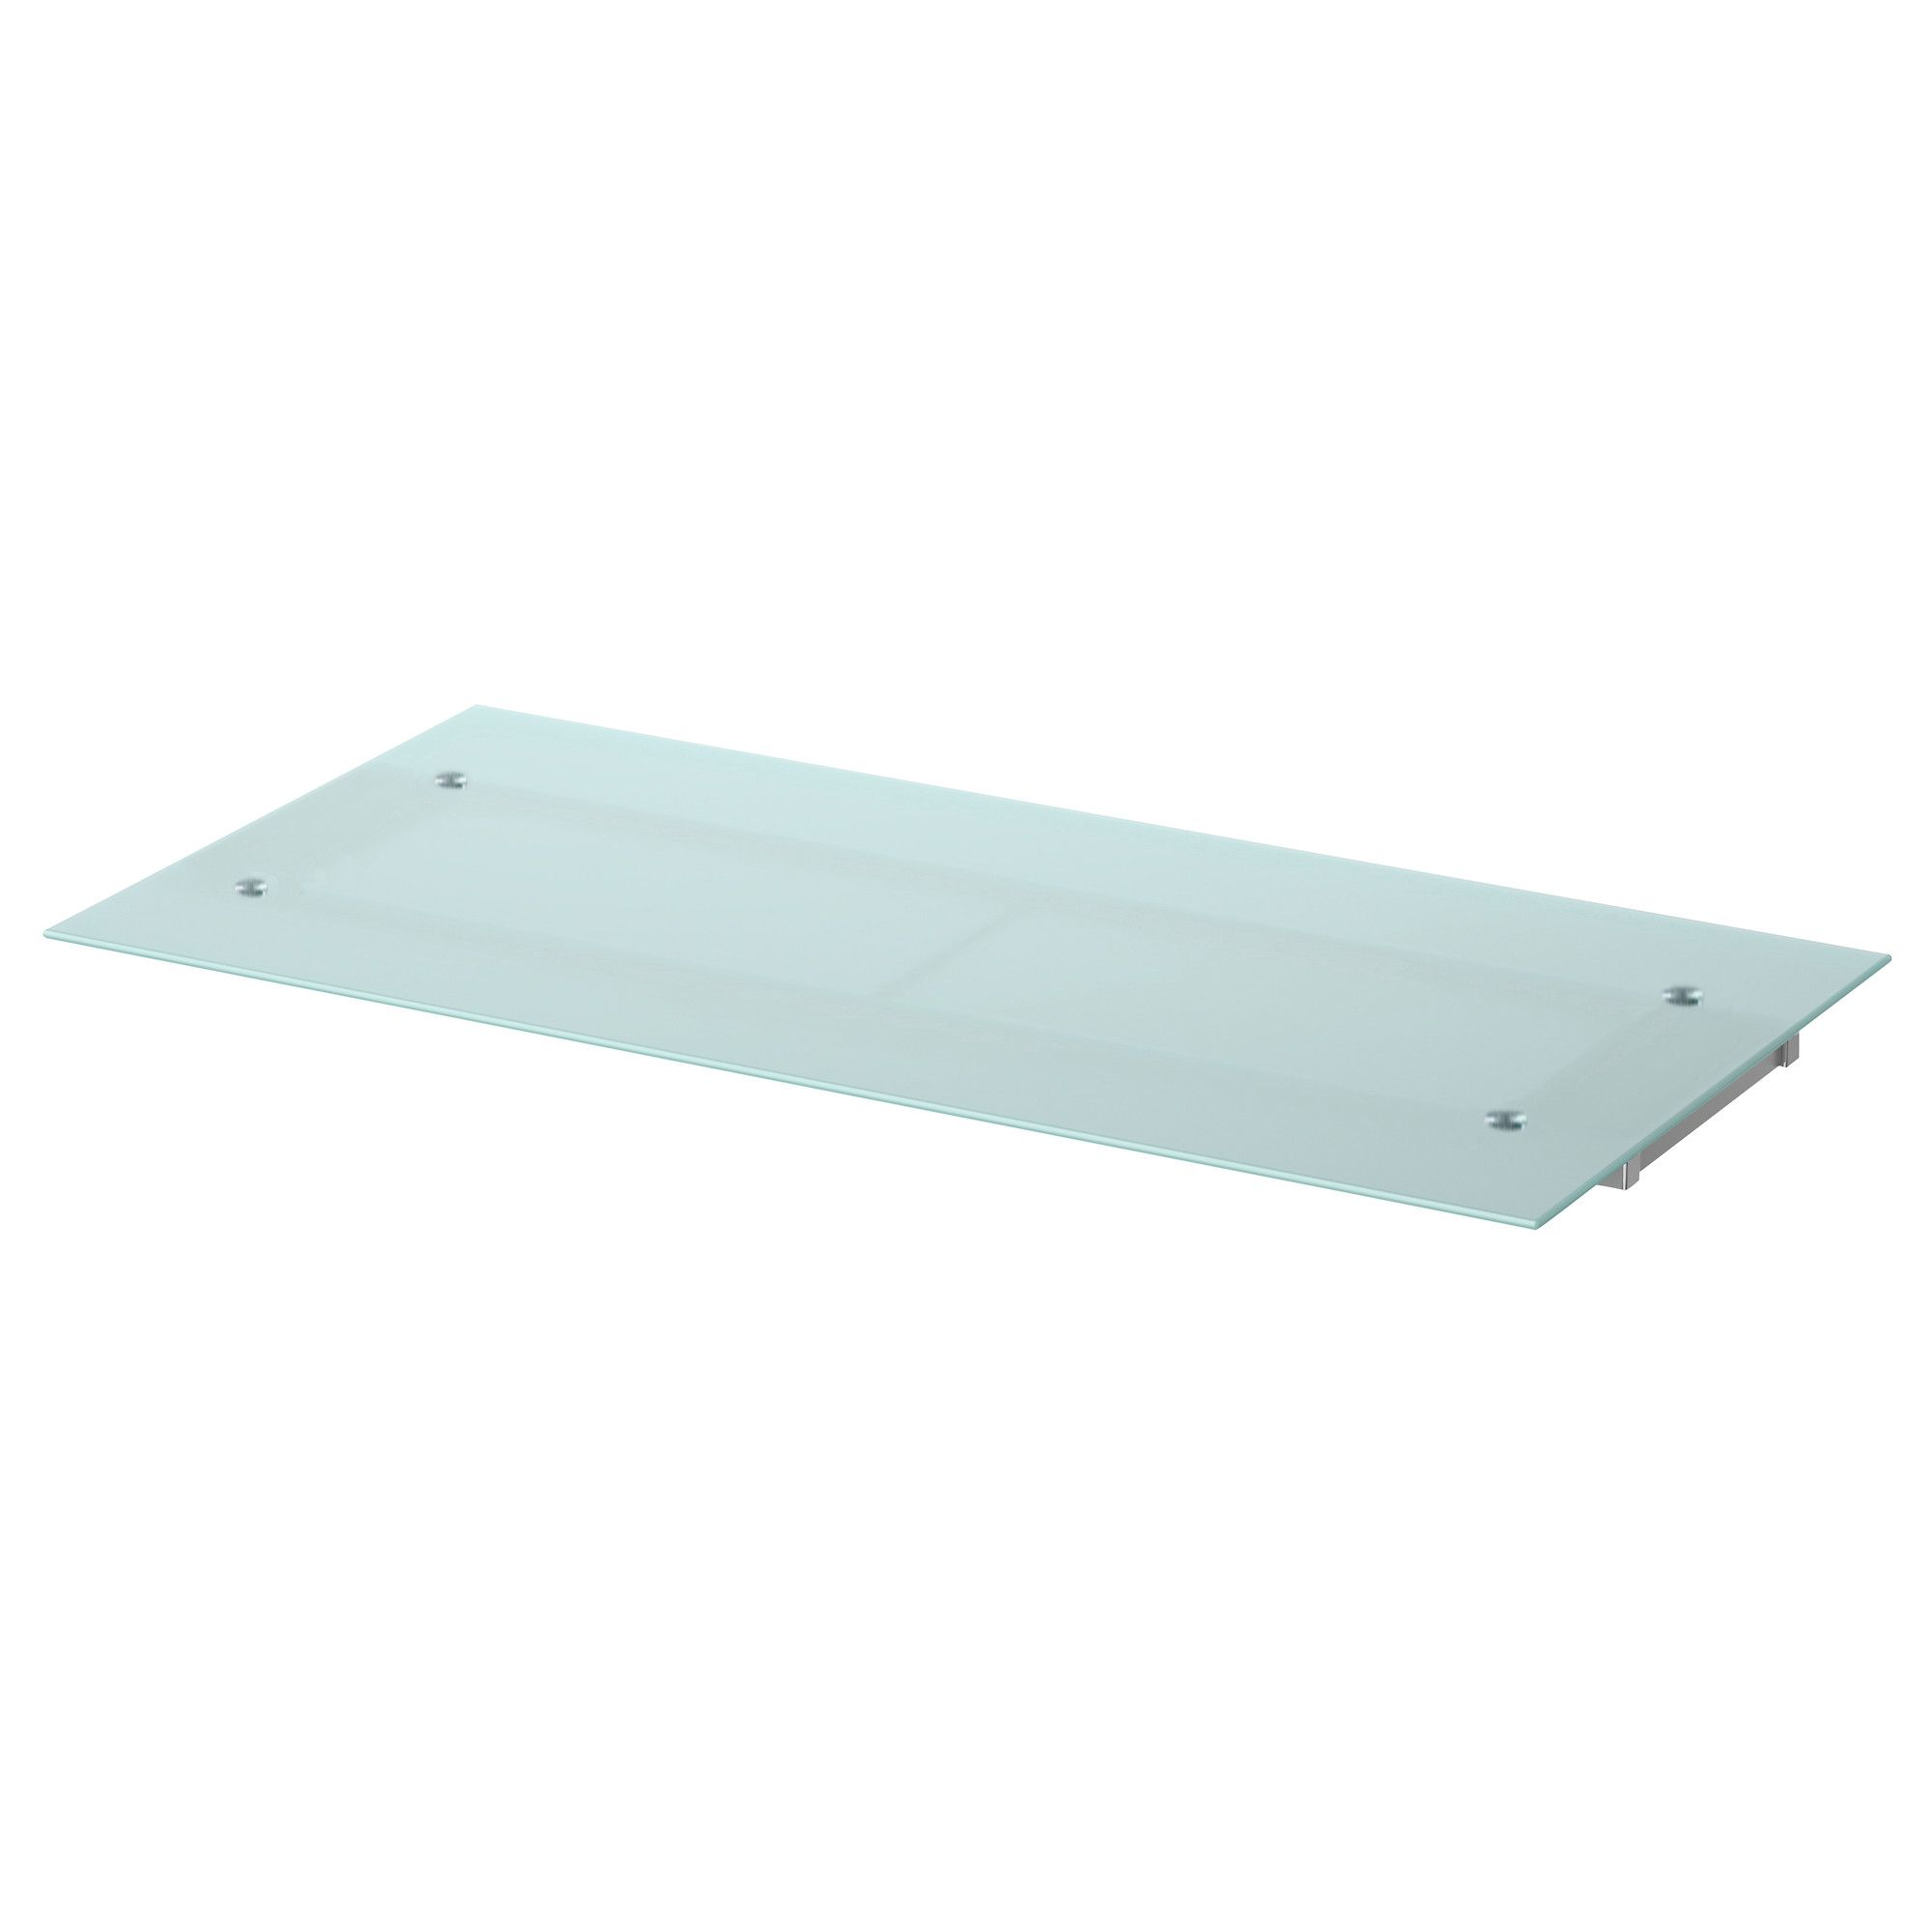 GALANT Table top with frame - glass - IKEA